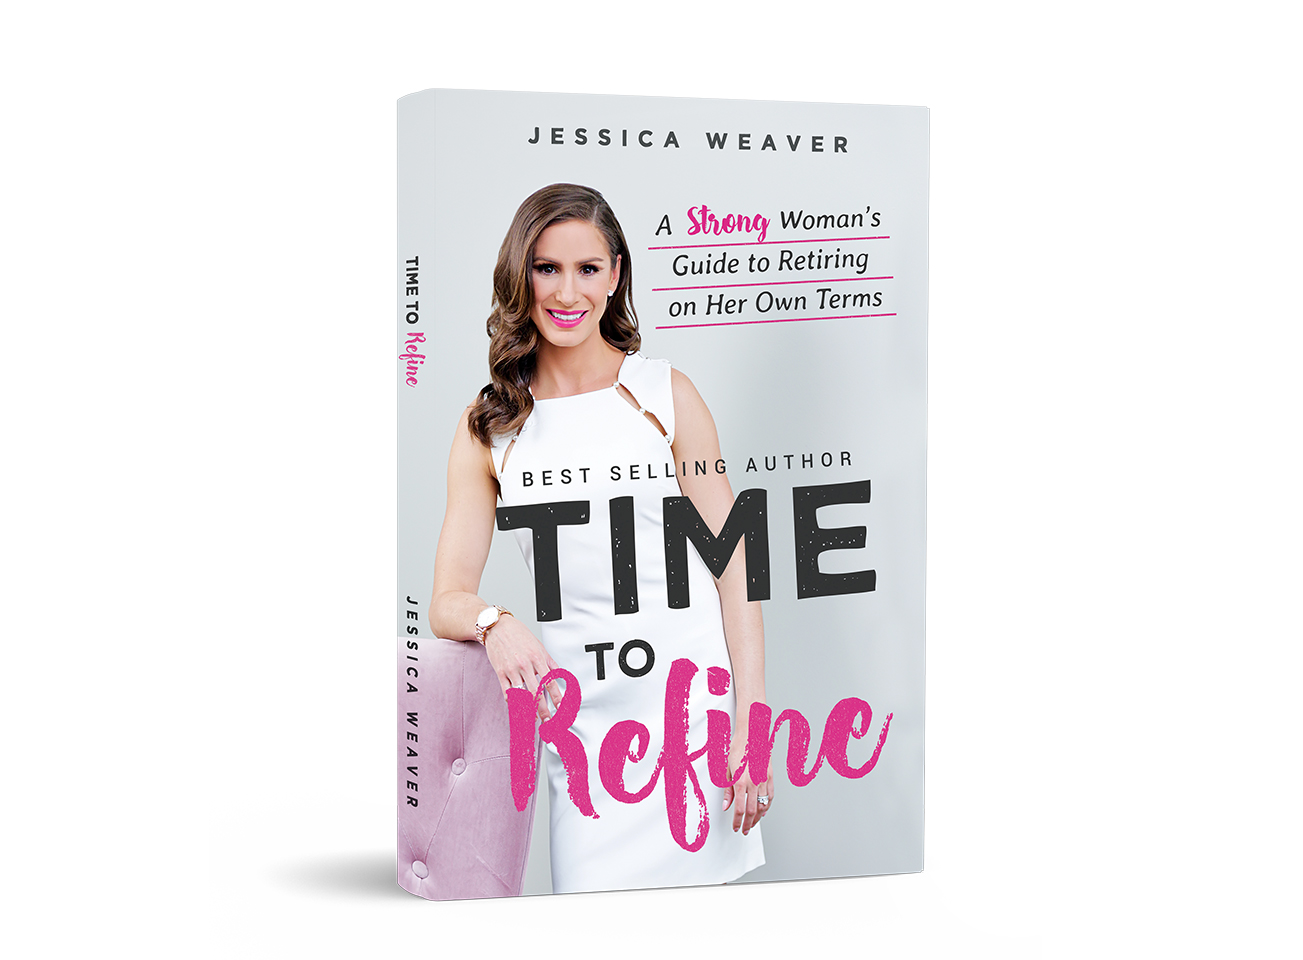 "- Here's what people are saying about TIME to REFINE:""She's NOT your father's advisor, and that's a GOOD thing!""""Most financial guidance books I've read either (A) put me to sleep; (B) talk down to me, or (C) offer no real practical ideas. Not the case with Jessica's book (it's her 2nd by the way, if you haven't yet read Strong Women, Stronger Assets, I suggest you do). She writes in an upbeat, positive way, using real life examples that are easy to relate to. Jess provides solid steps to take now and in the future, regardless of the age/stage of retirement planning you are in. Jess also addresses the important idea that our assets aren't all financial. Prepping for retirement includes other aspects of our lives, not just our Money. This is an easy read, with useful ideas. It will be a valuable part of your retirement/LIFE planning resources."" Leslie""LADIES FINALLY A RETIREMENT HANDBOOK TAILORED FOR US!""""I have been looking for a book on planning for retirement that is easy to understand with steps that are easy to implement without being too general. Jessica's book is just what's I have been looking for!!! I highly recommend it to all the ladies out there who are looking to plan for the future!! The book was charming and extremely informative! This is a MUST READ!"" lAUREN"